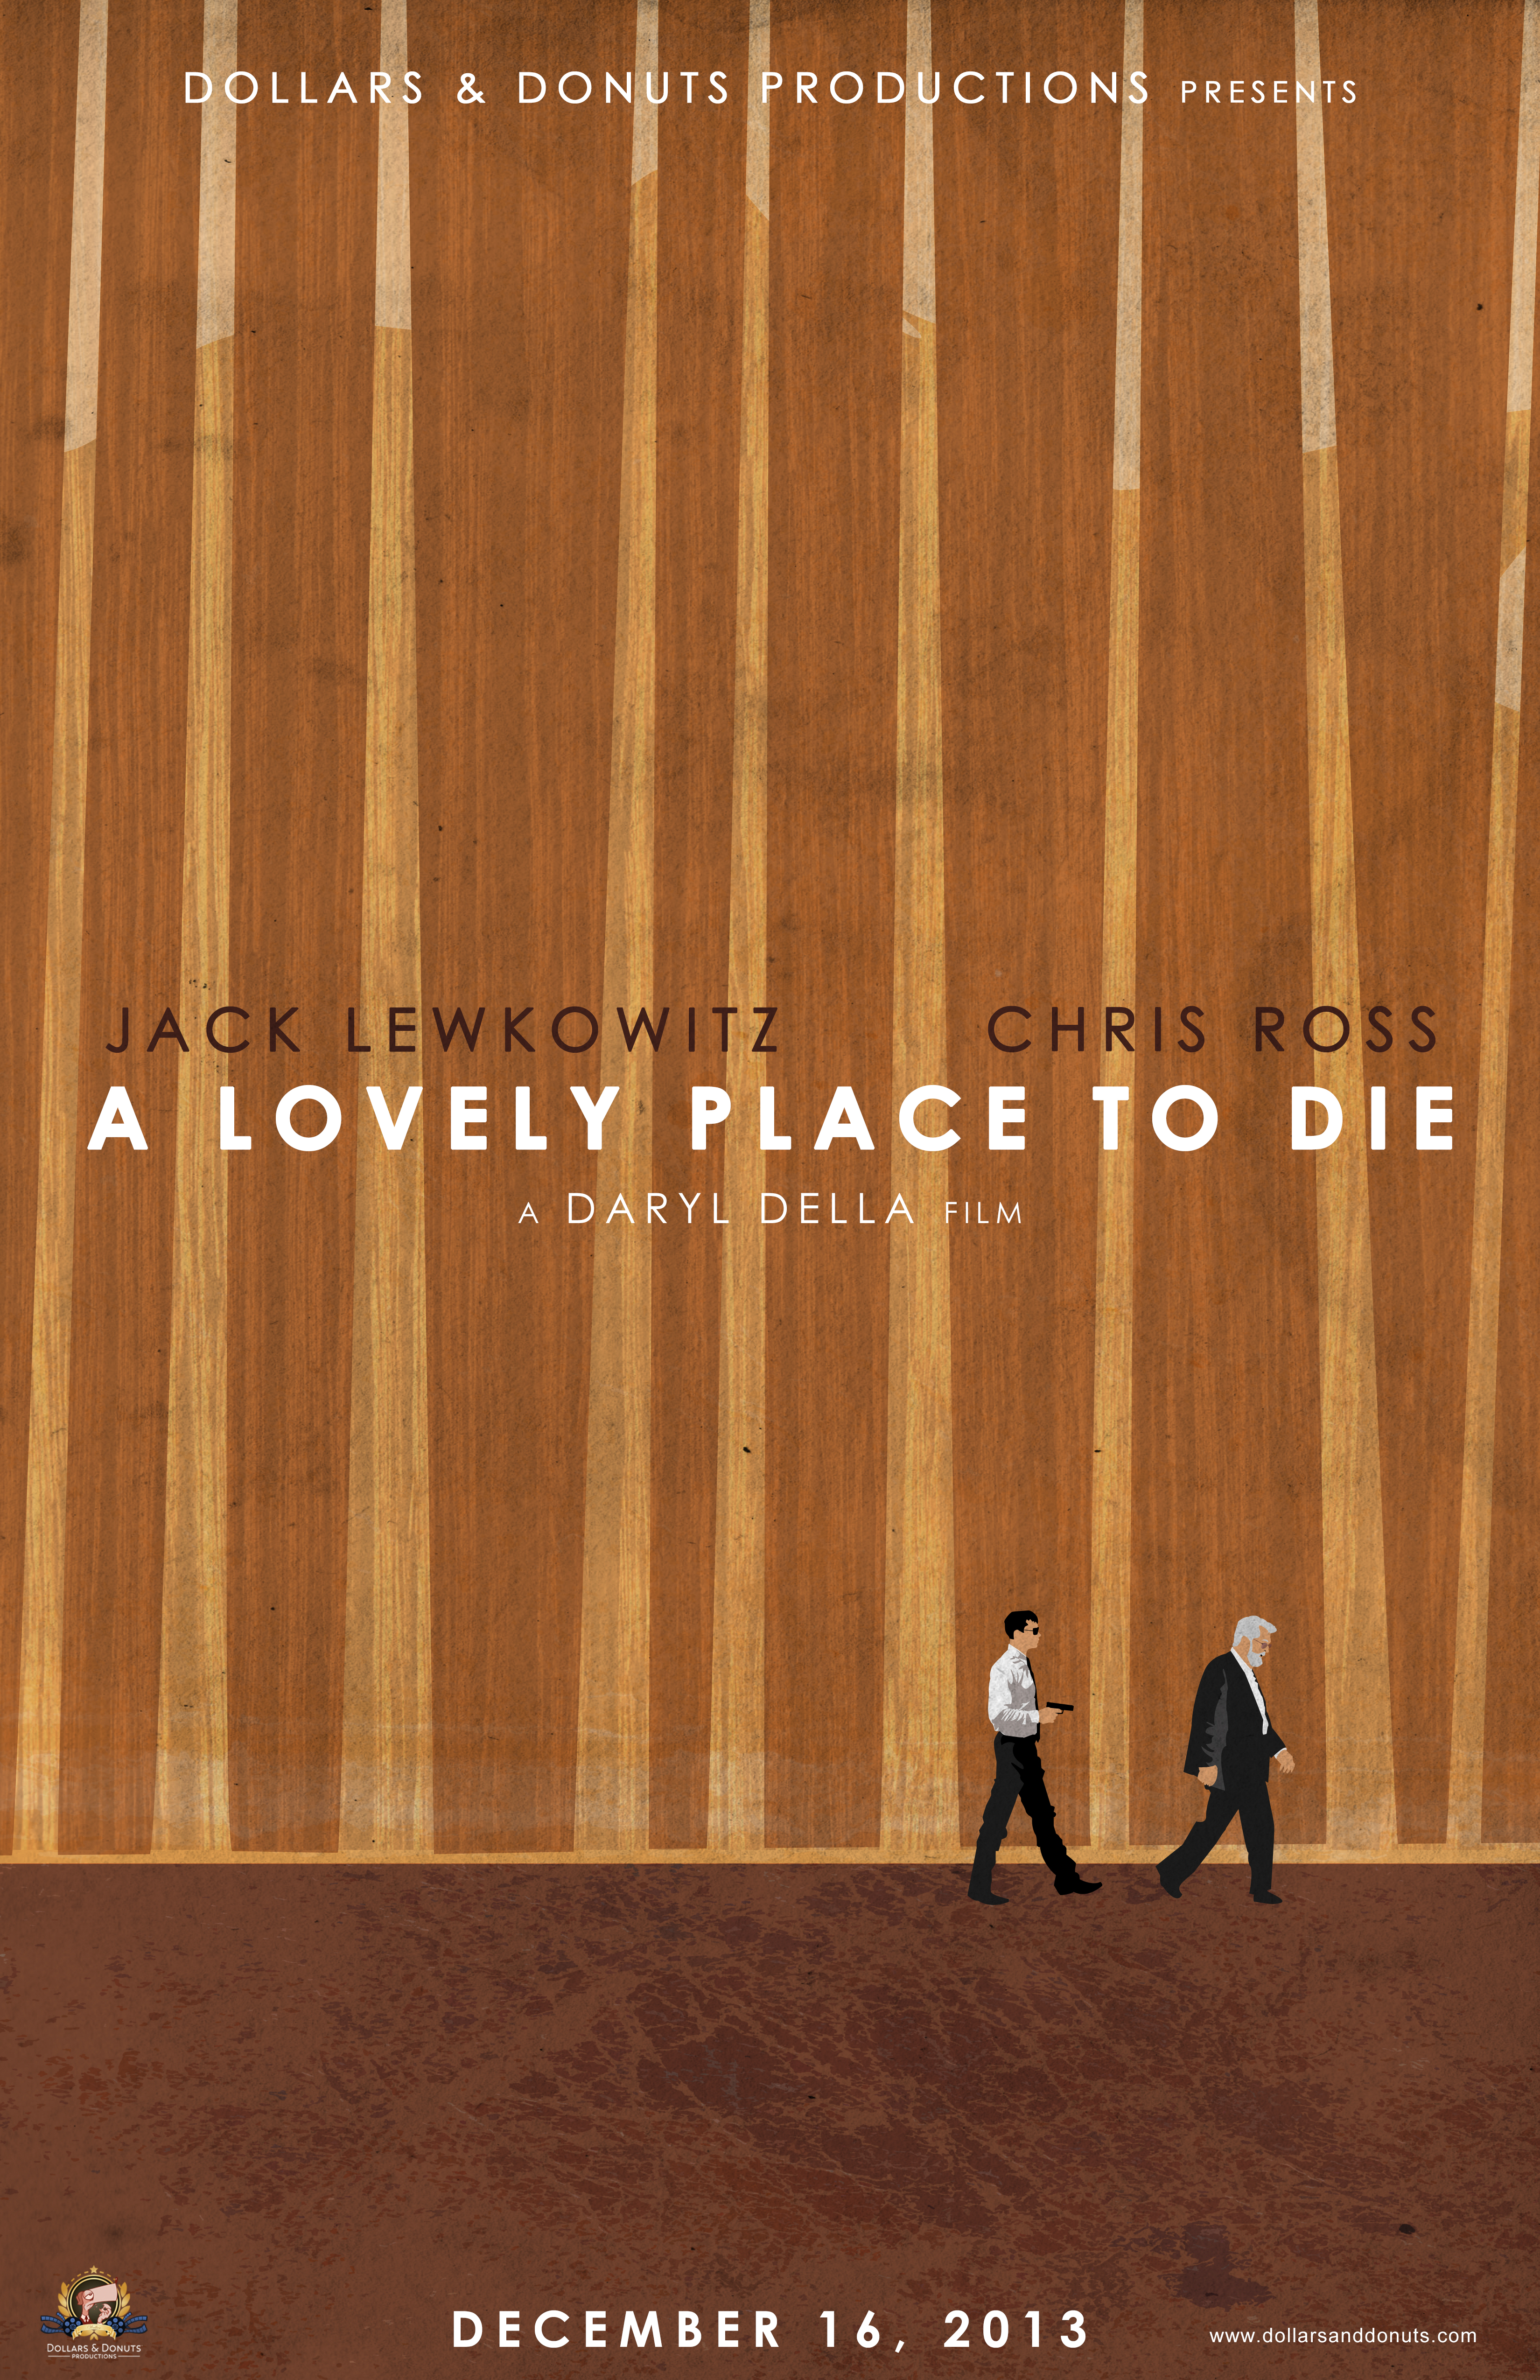 LovelyPlaceToDiePoster